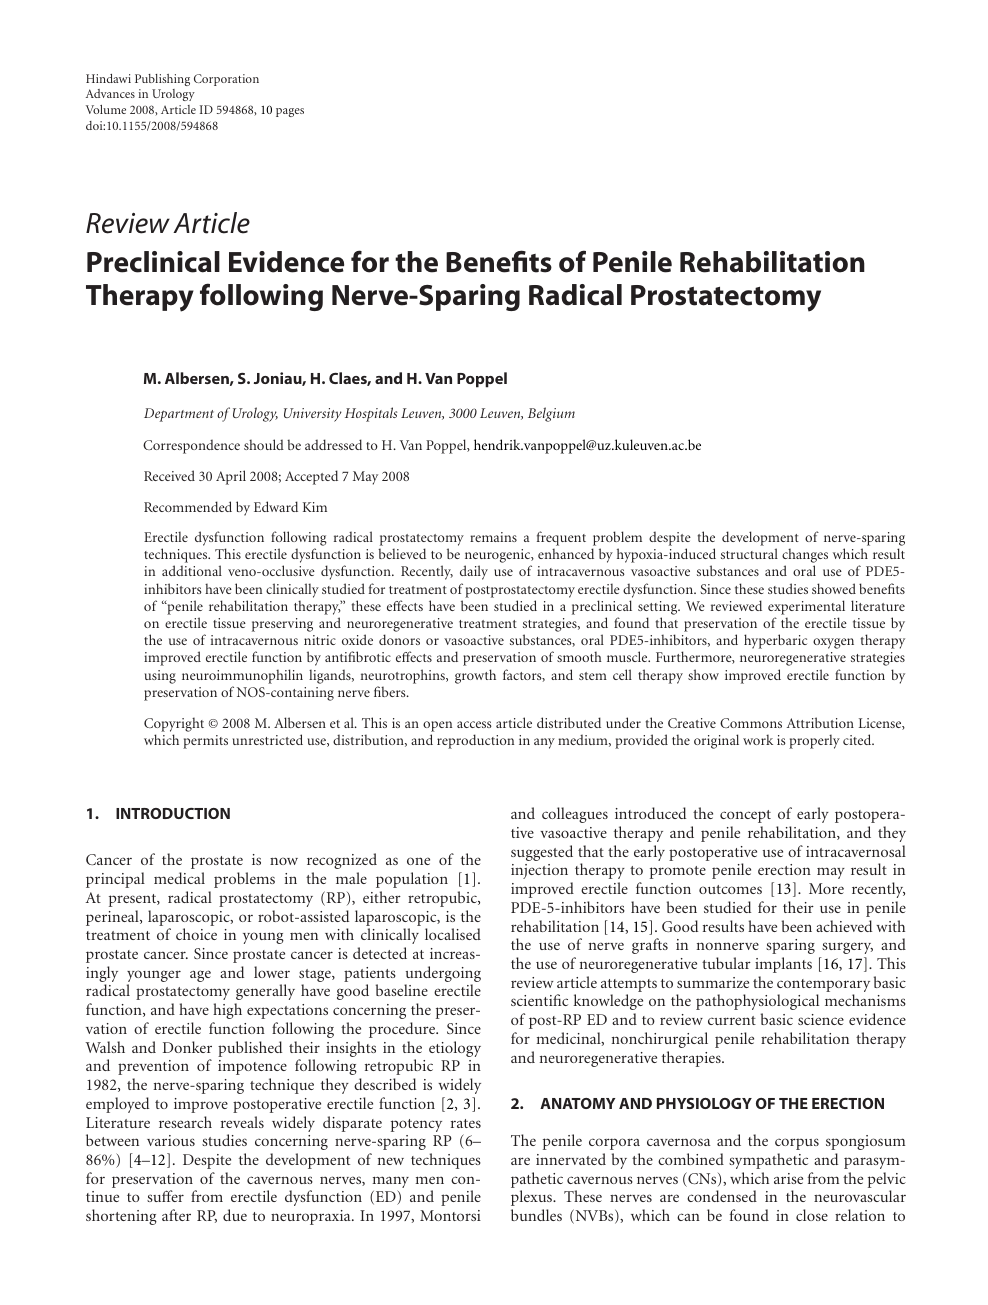 Preclinical Evidence For The Benefits Of Penile Rehabilitation